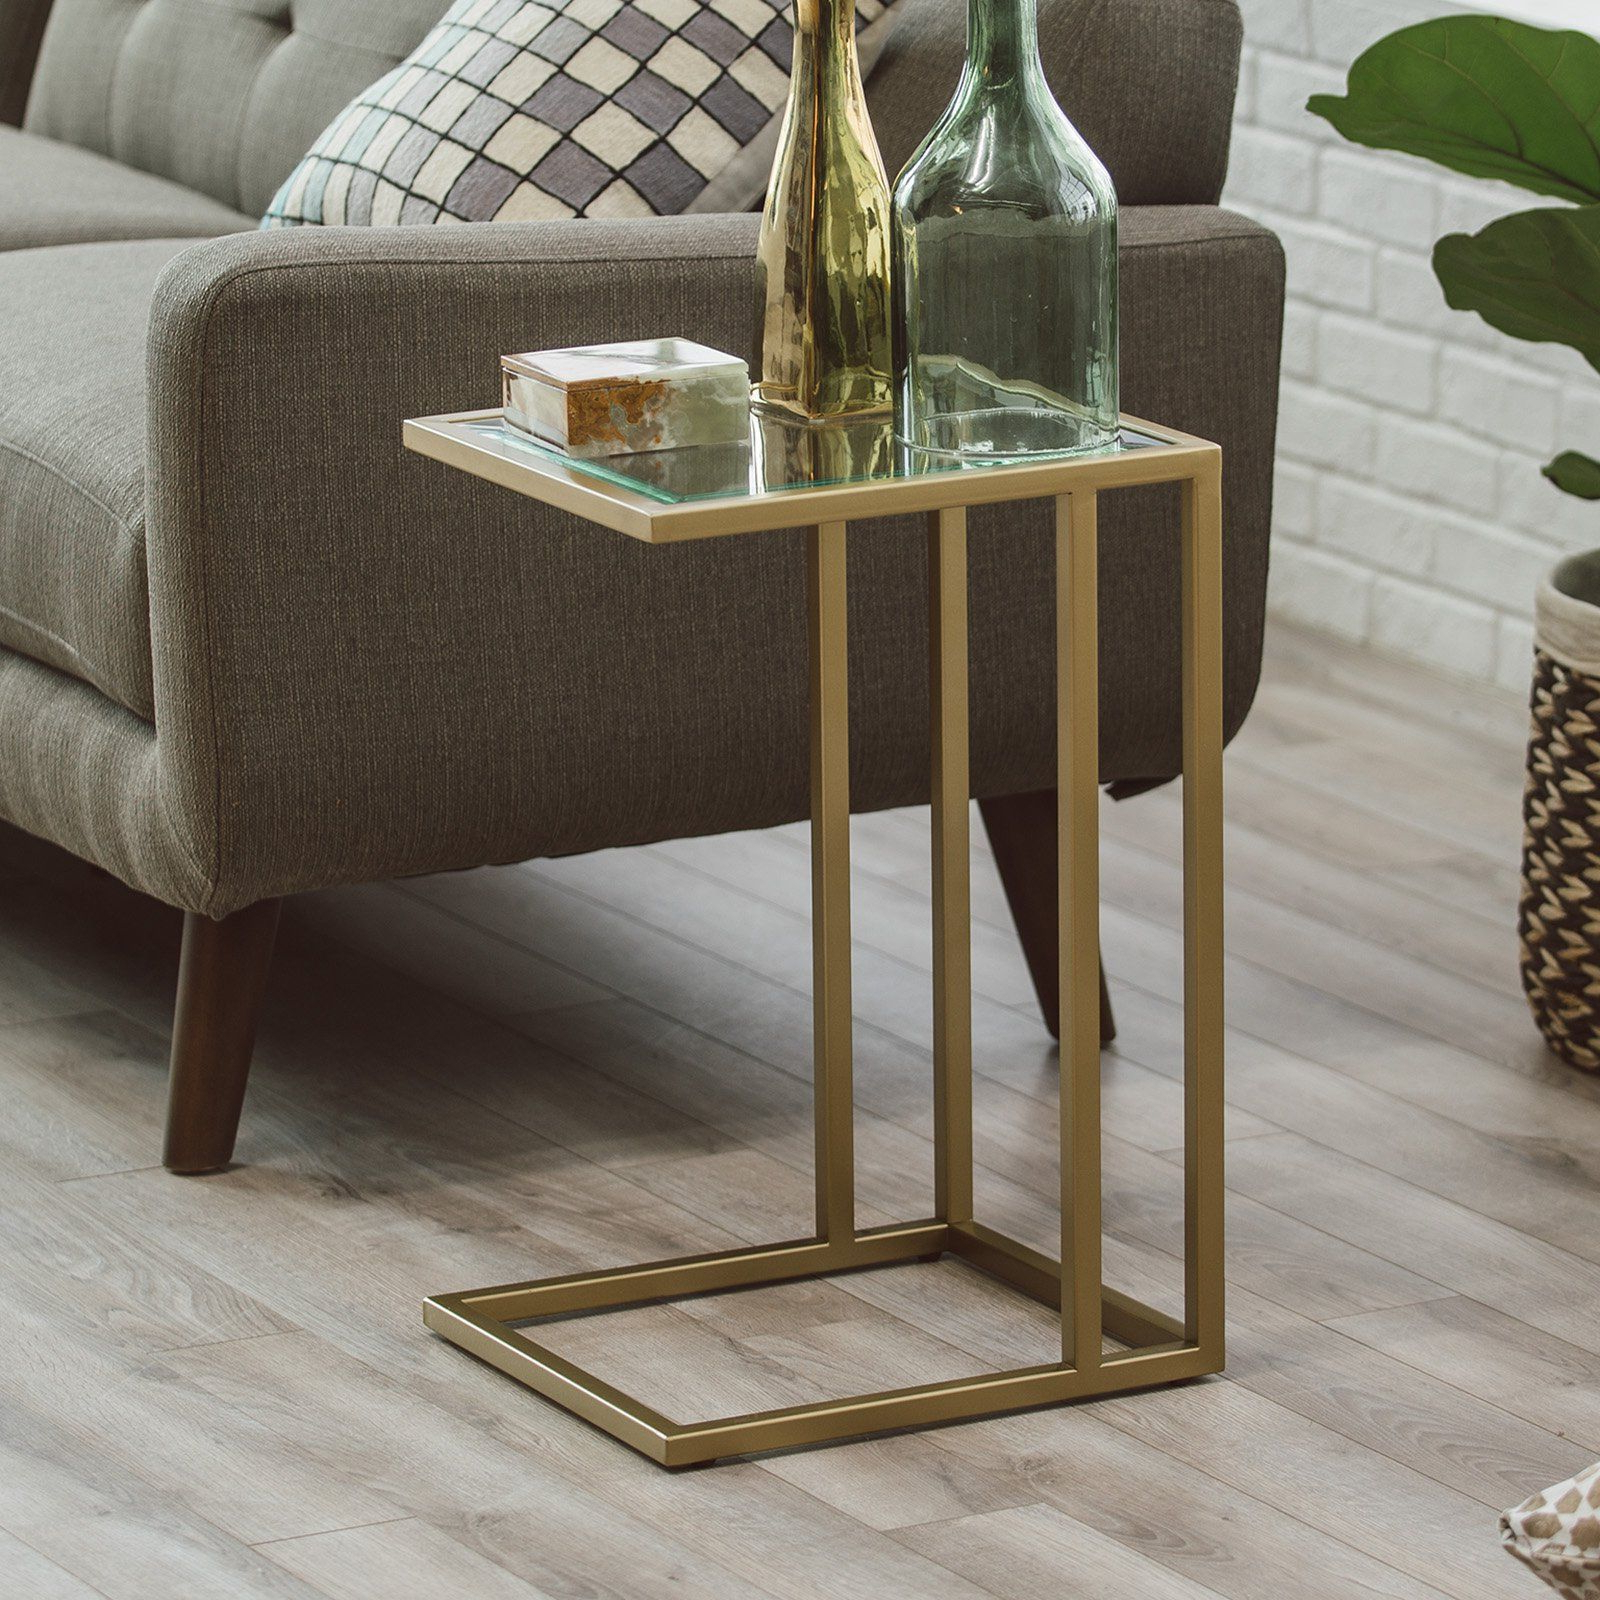 Most Recently Released Copper Grove Obsidian Black Tempered Glass Apartment Coffee Tables With Regard To Belham Living Lamont C Table – Gold (View 13 of 20)